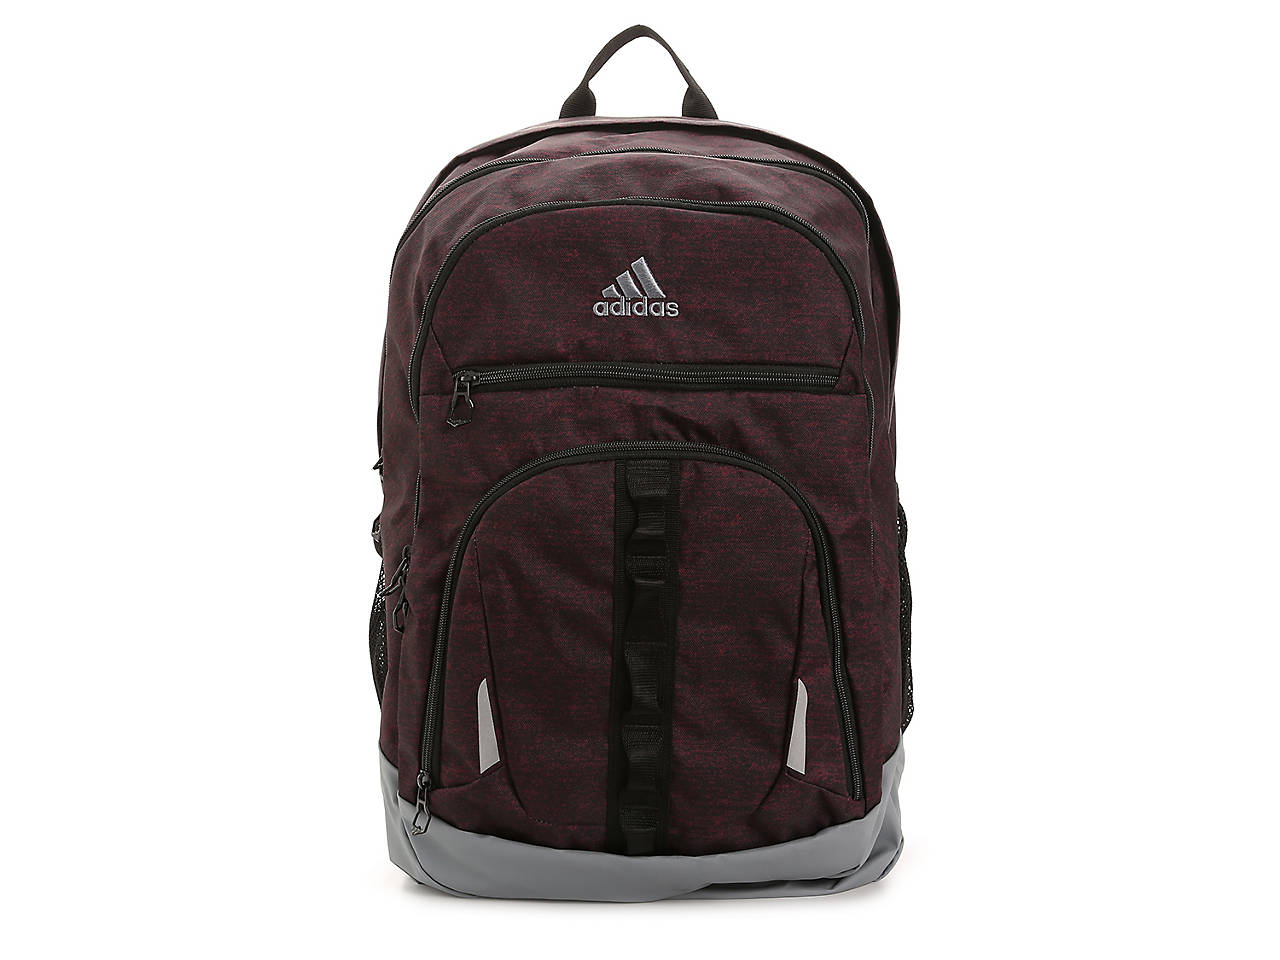 b2880f36ae5 adidas Prime IV Backpack Men's Handbags & Accessories | DSW